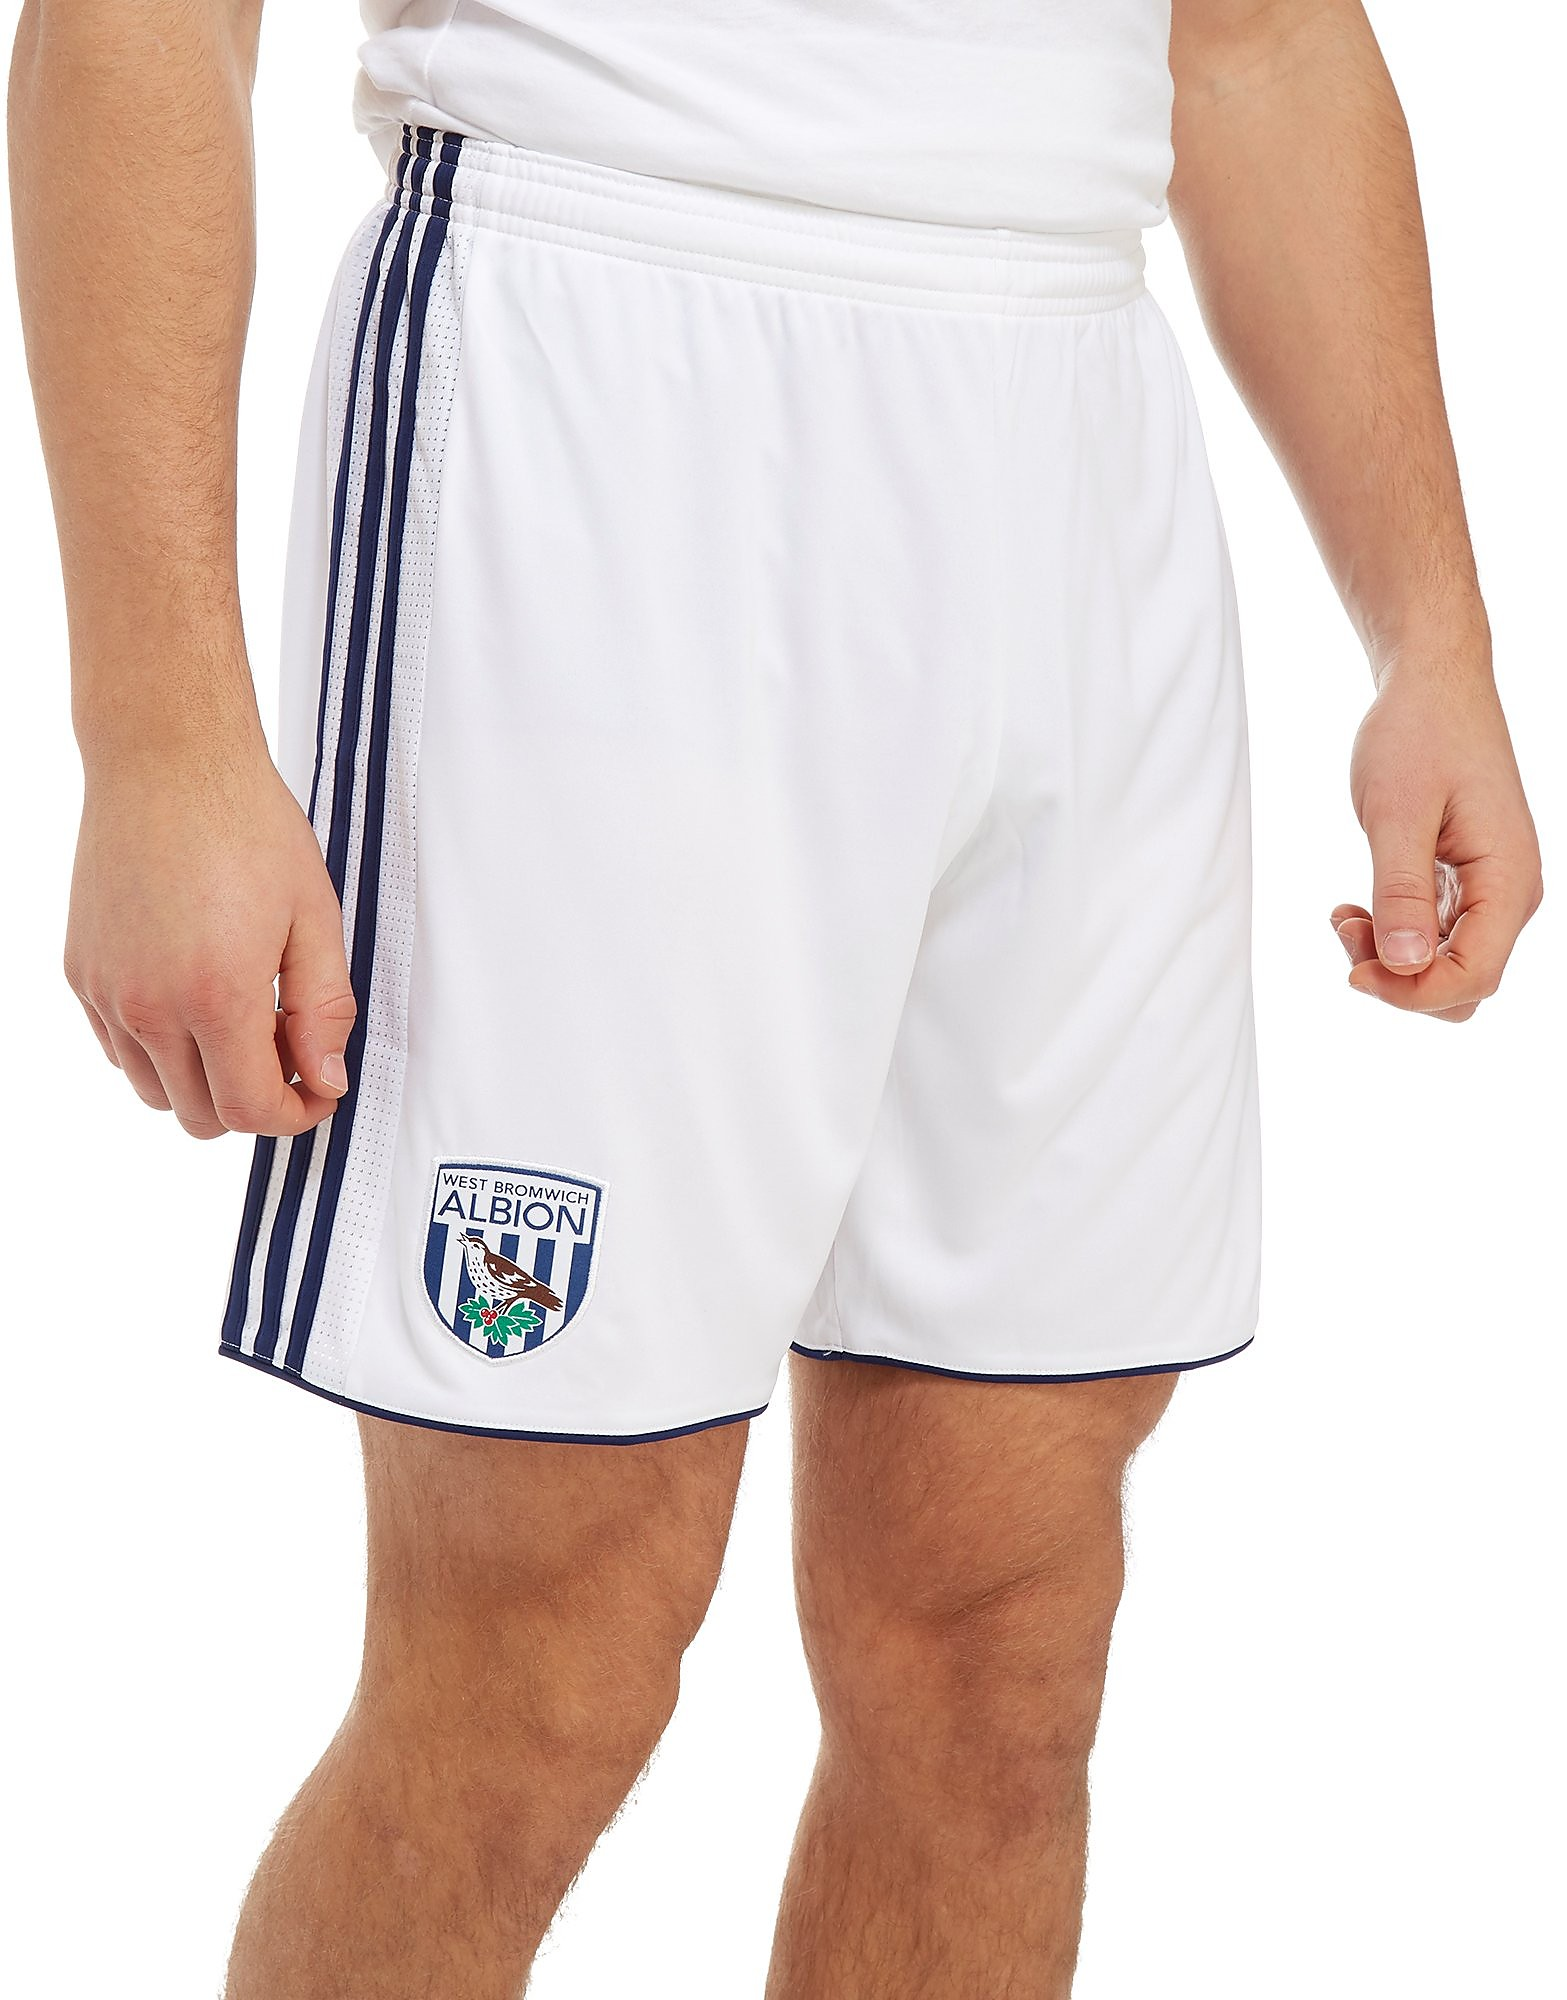 adidas West Brom Albion Home 2017/18 Shorts